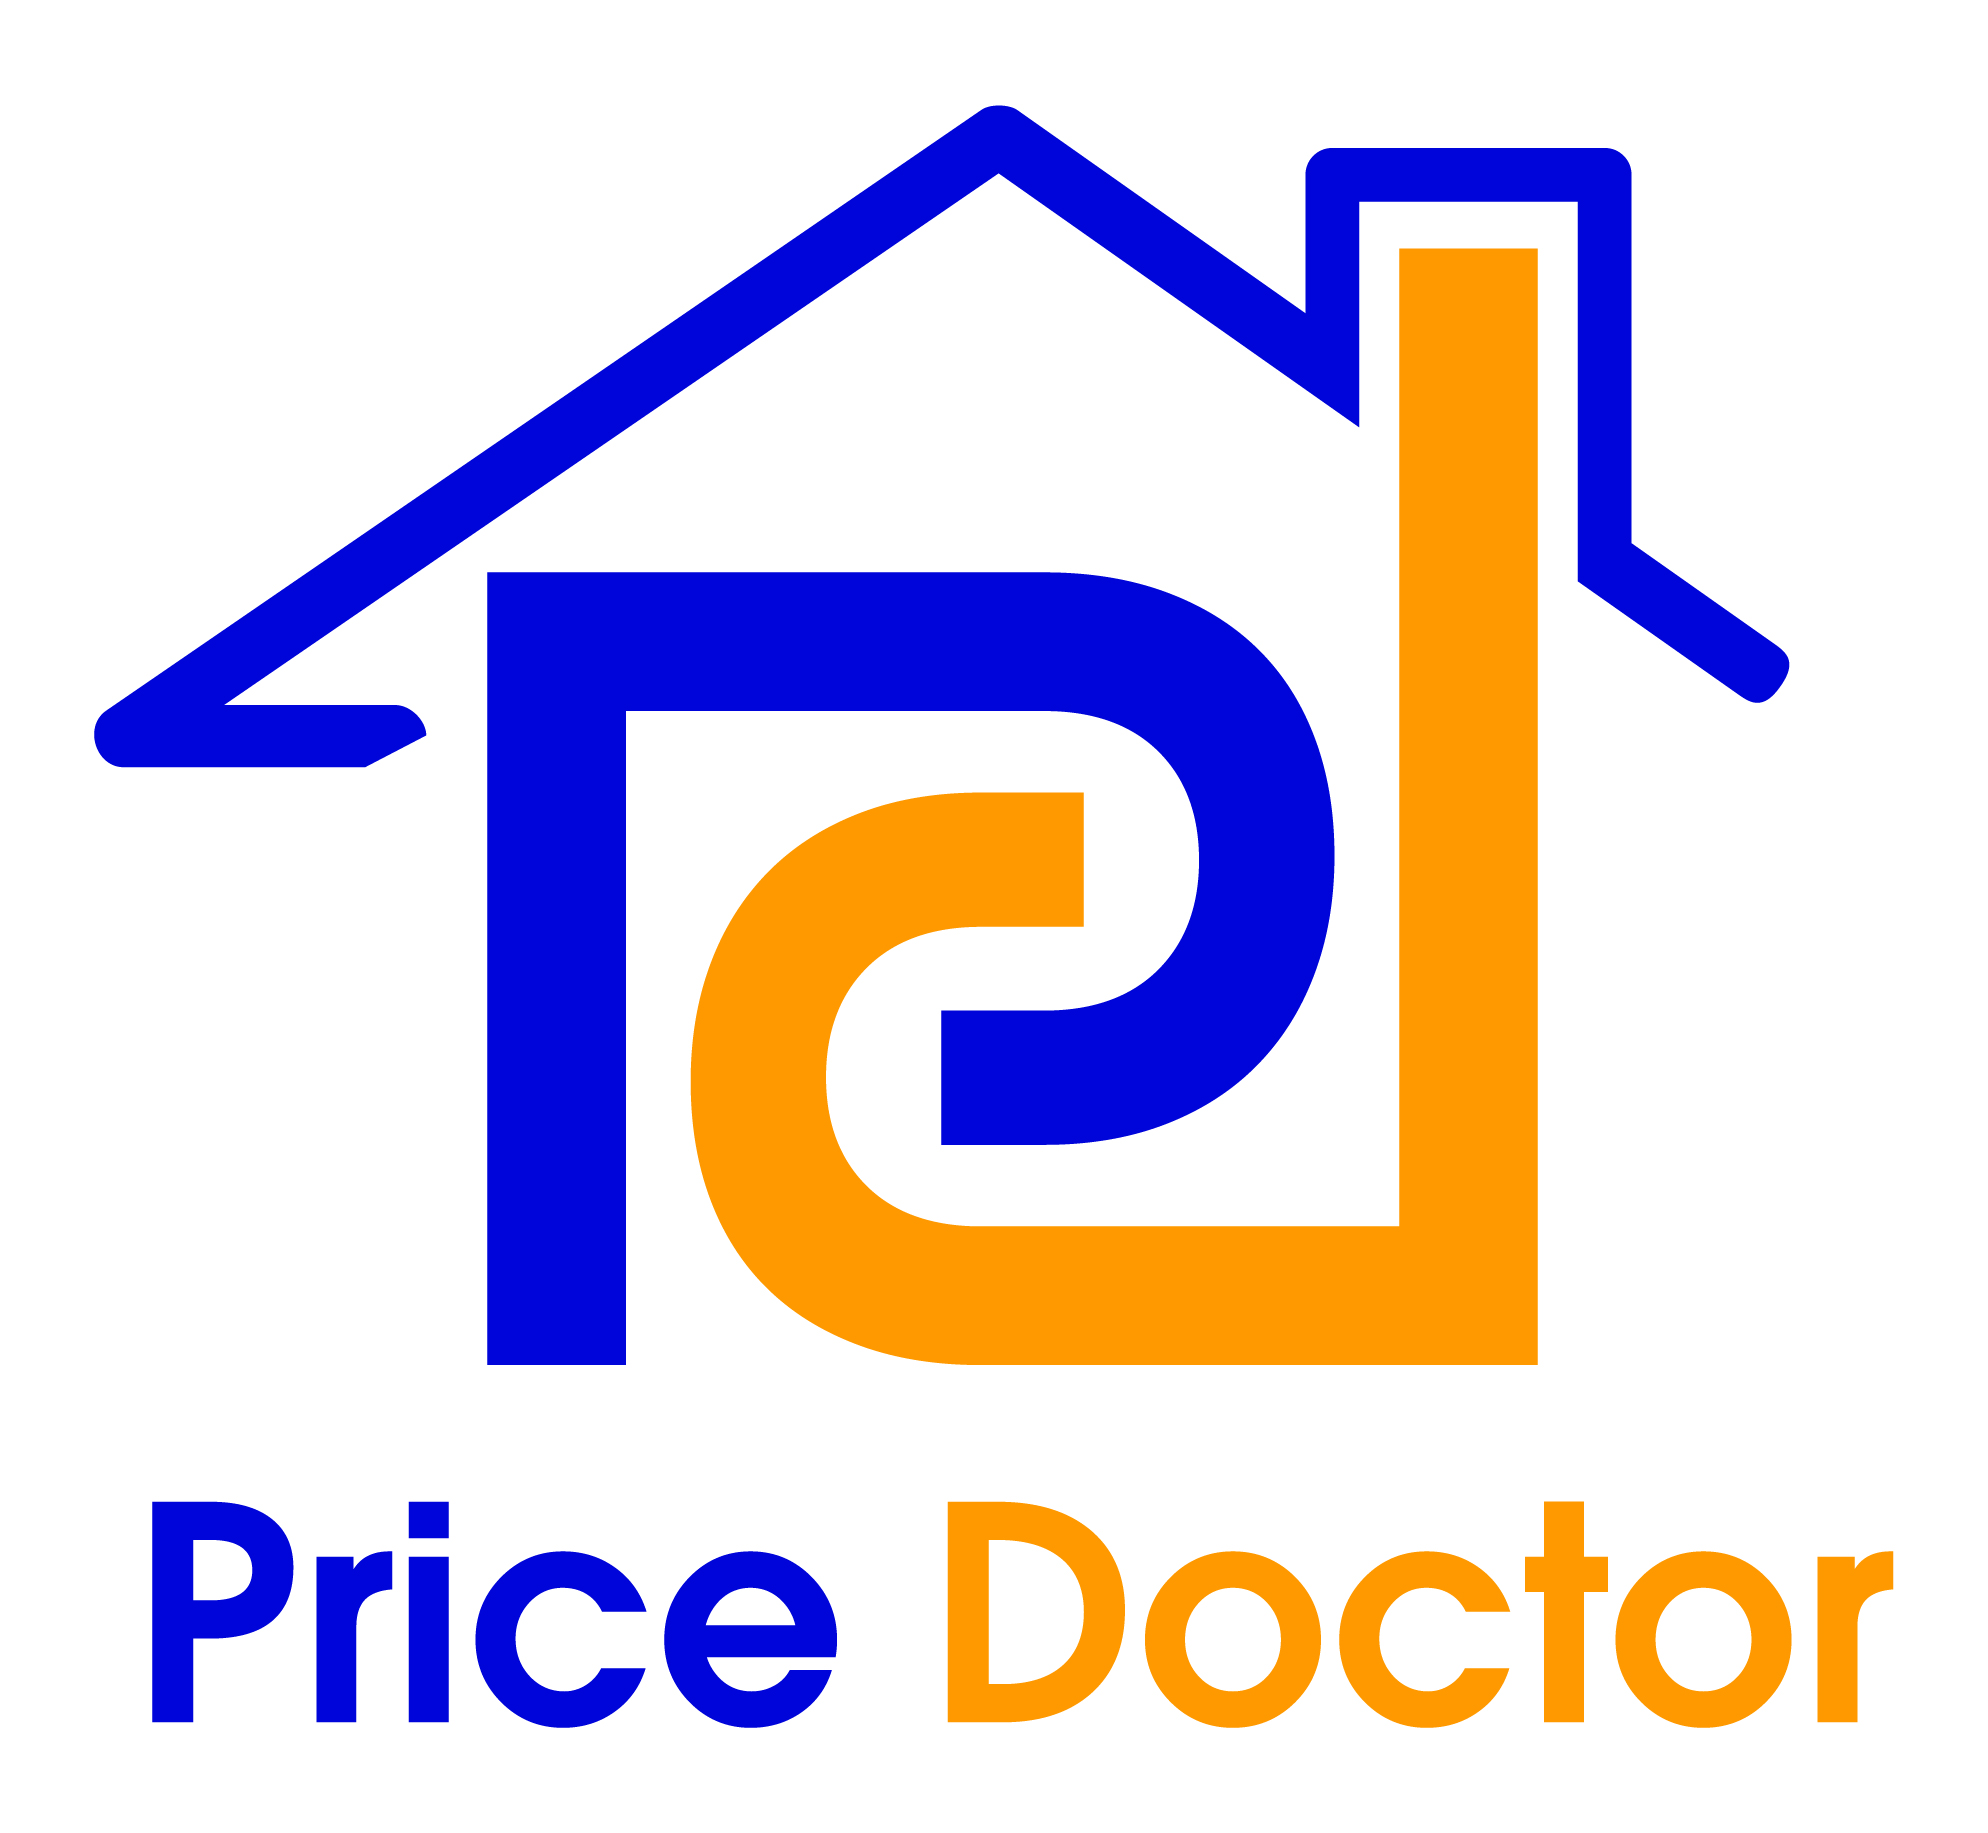 image of logo for Price Doctor Webware for checking building estimates